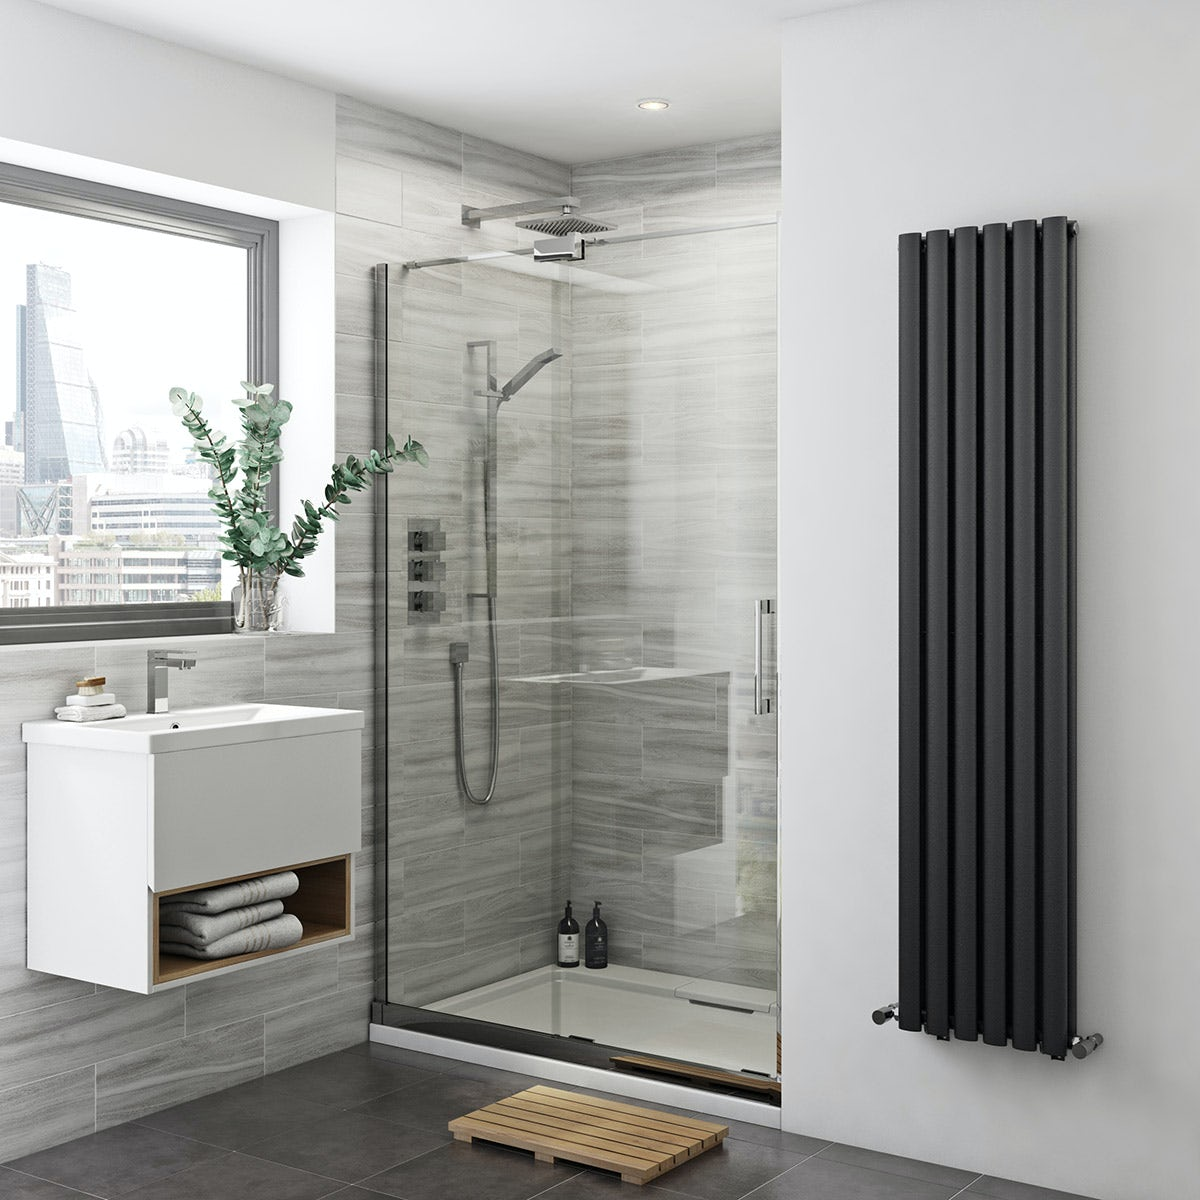 Carter 8mm easy clean left handed sliding shower door